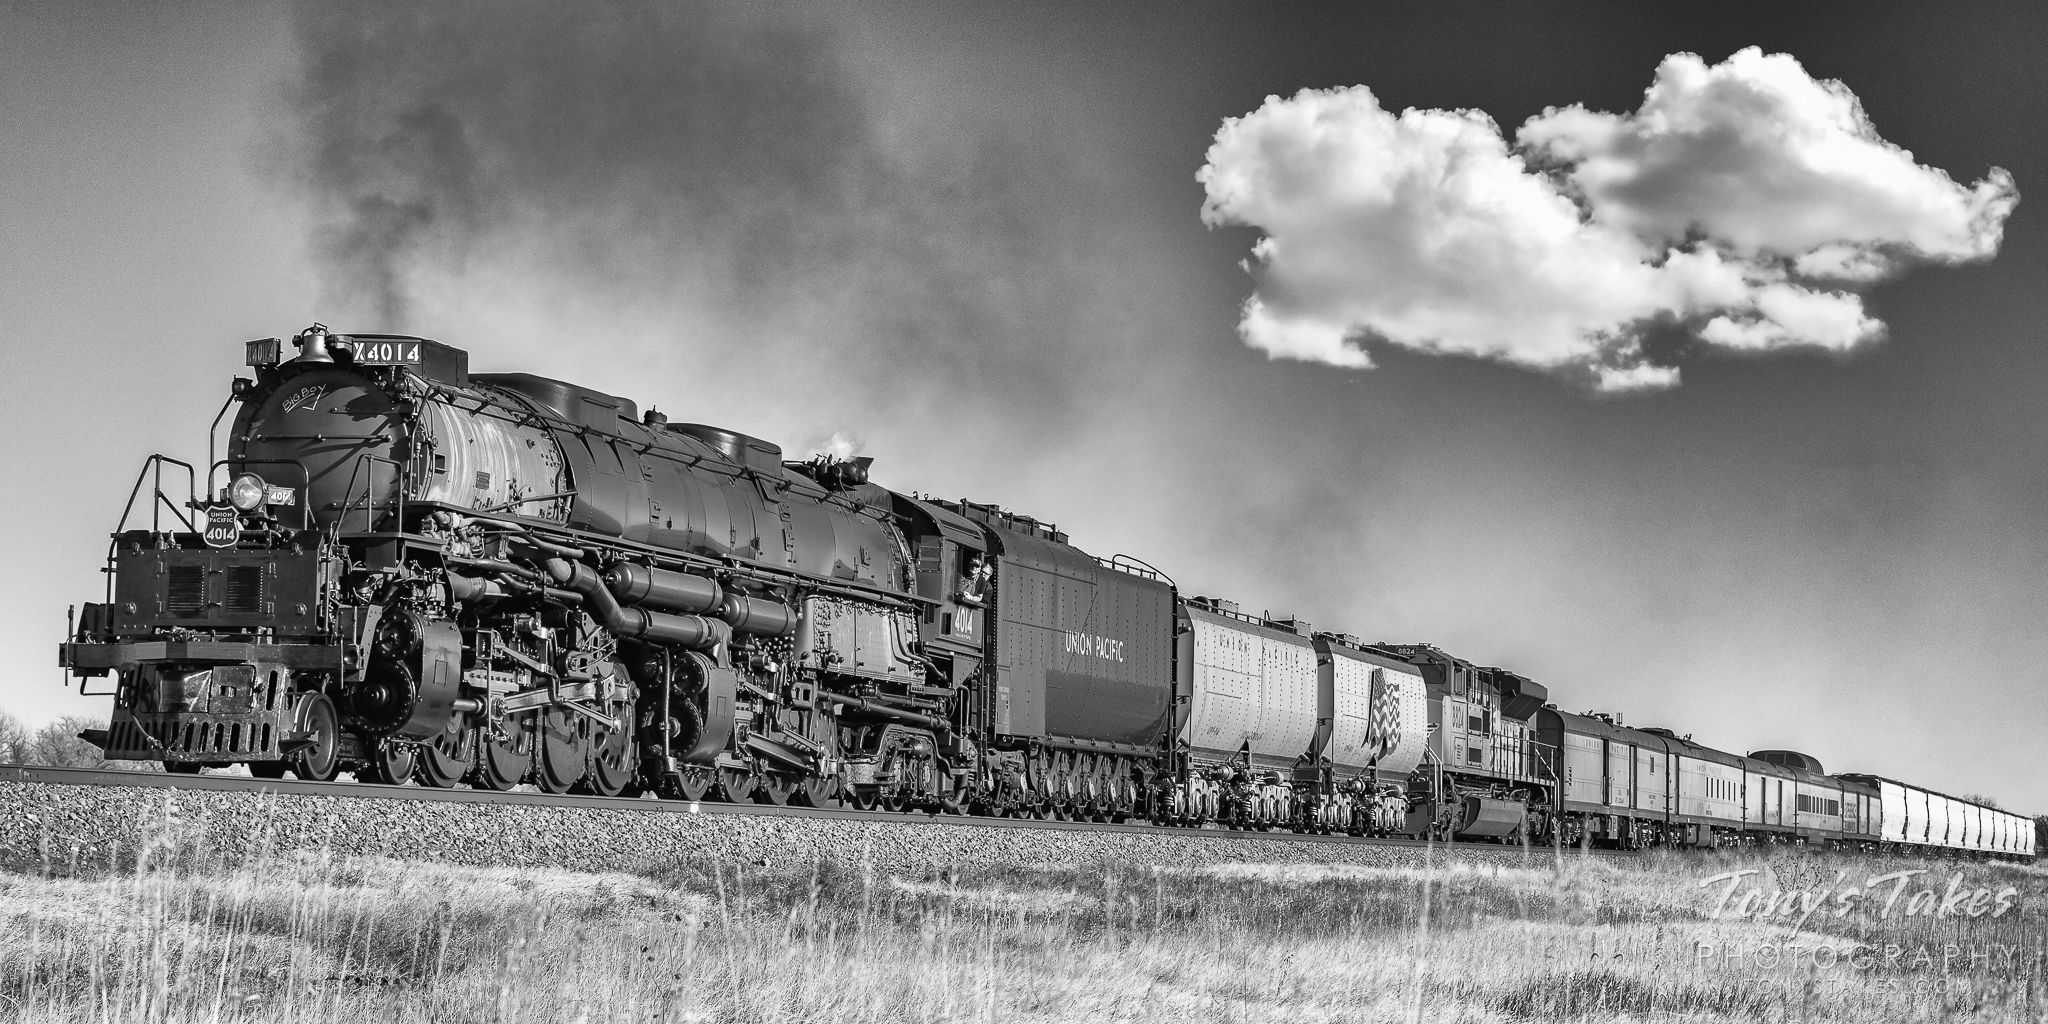 Union Pacific's Big Boy #4014 rolls across the Colorado plains. (© Tony's Takes)